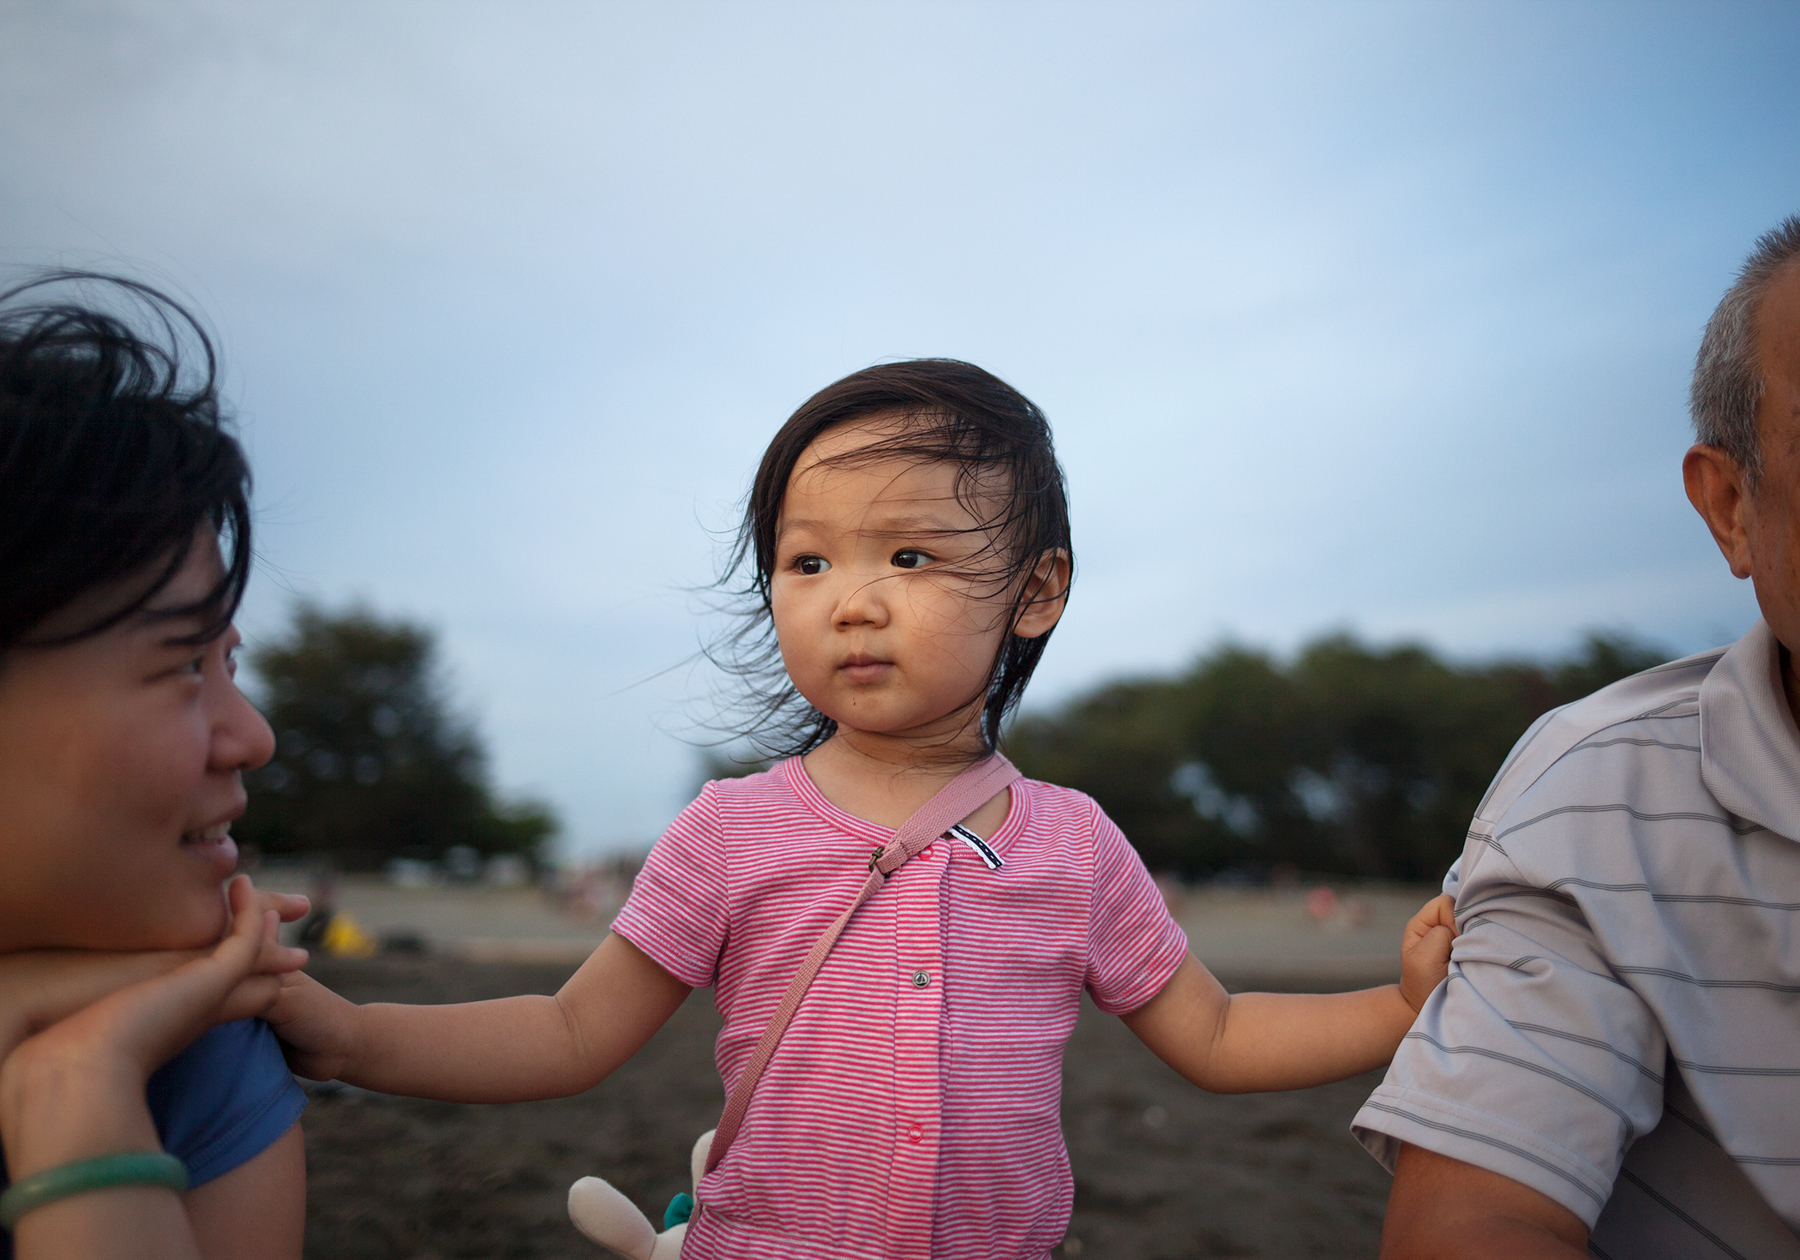 Niu-Niu on the beach in Tainan, Taiwan. 2015.